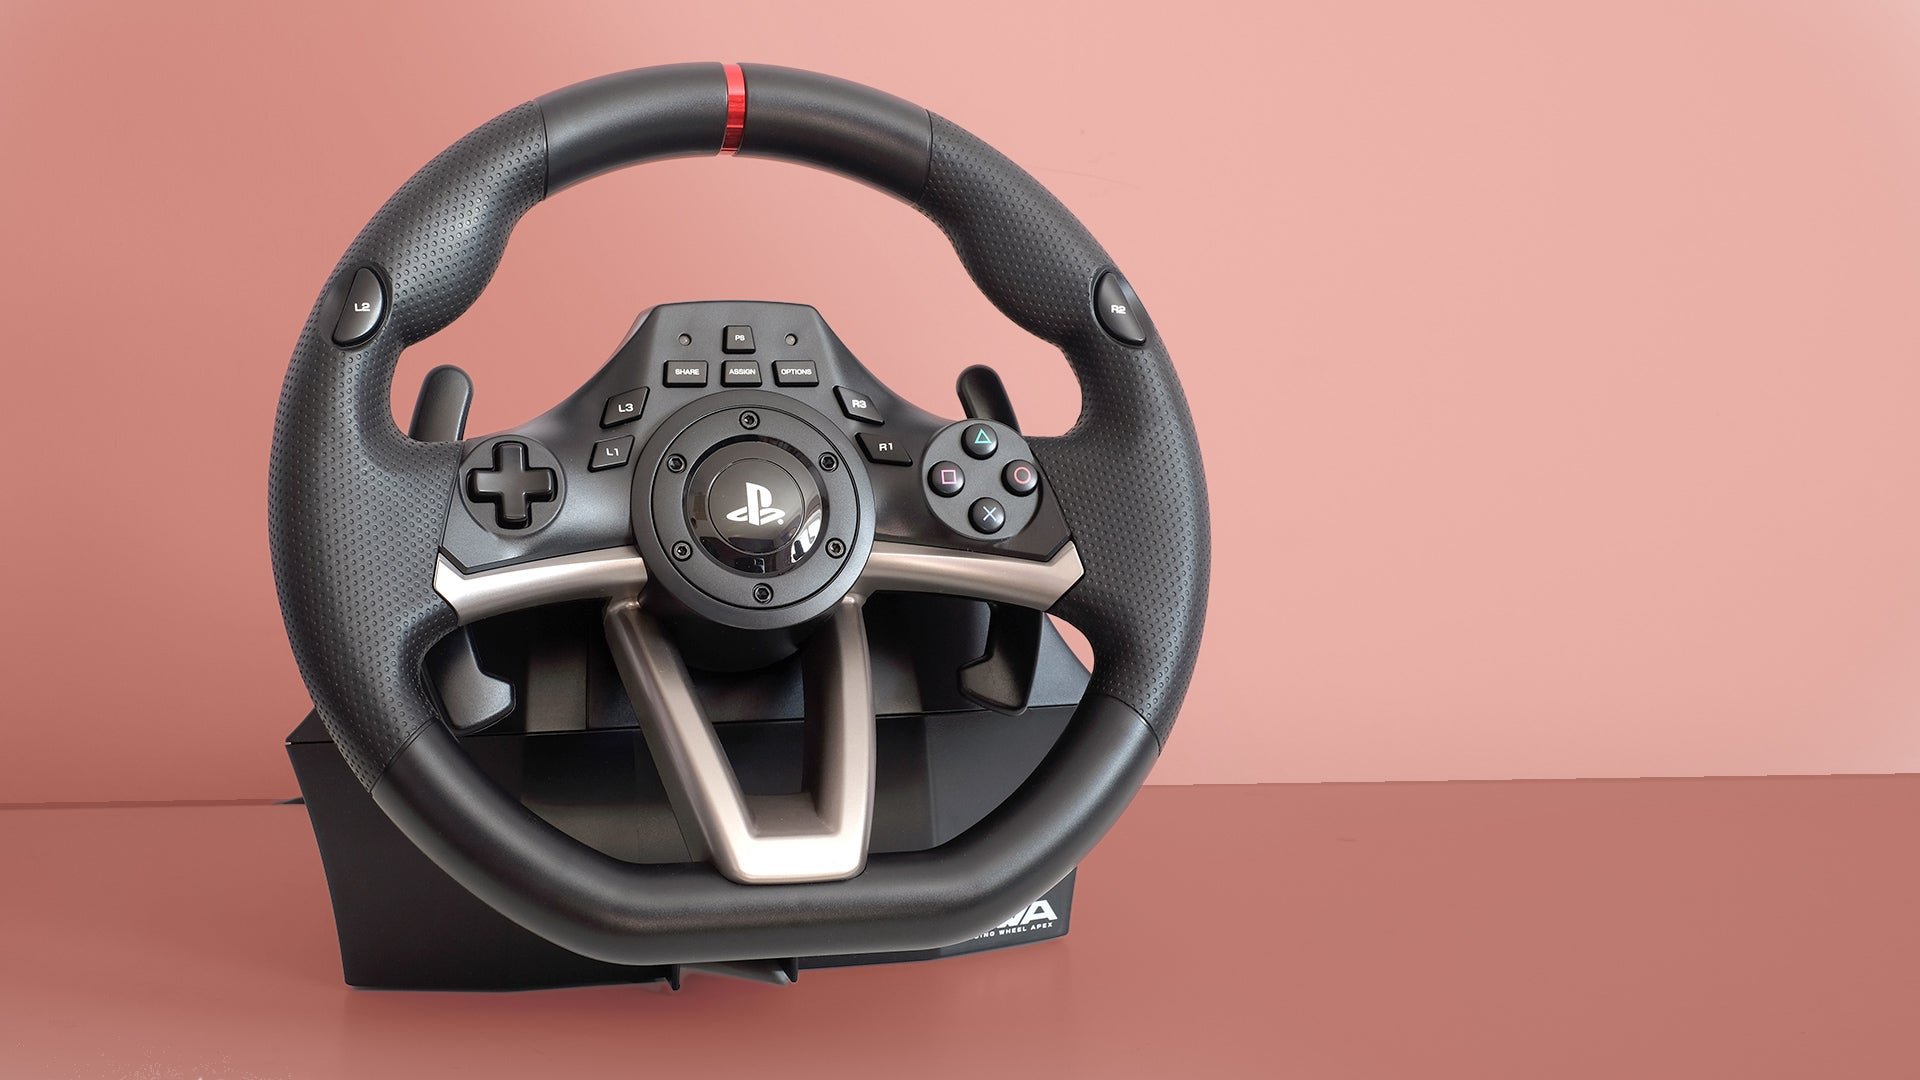 Hori Racing Wheel Apex Review